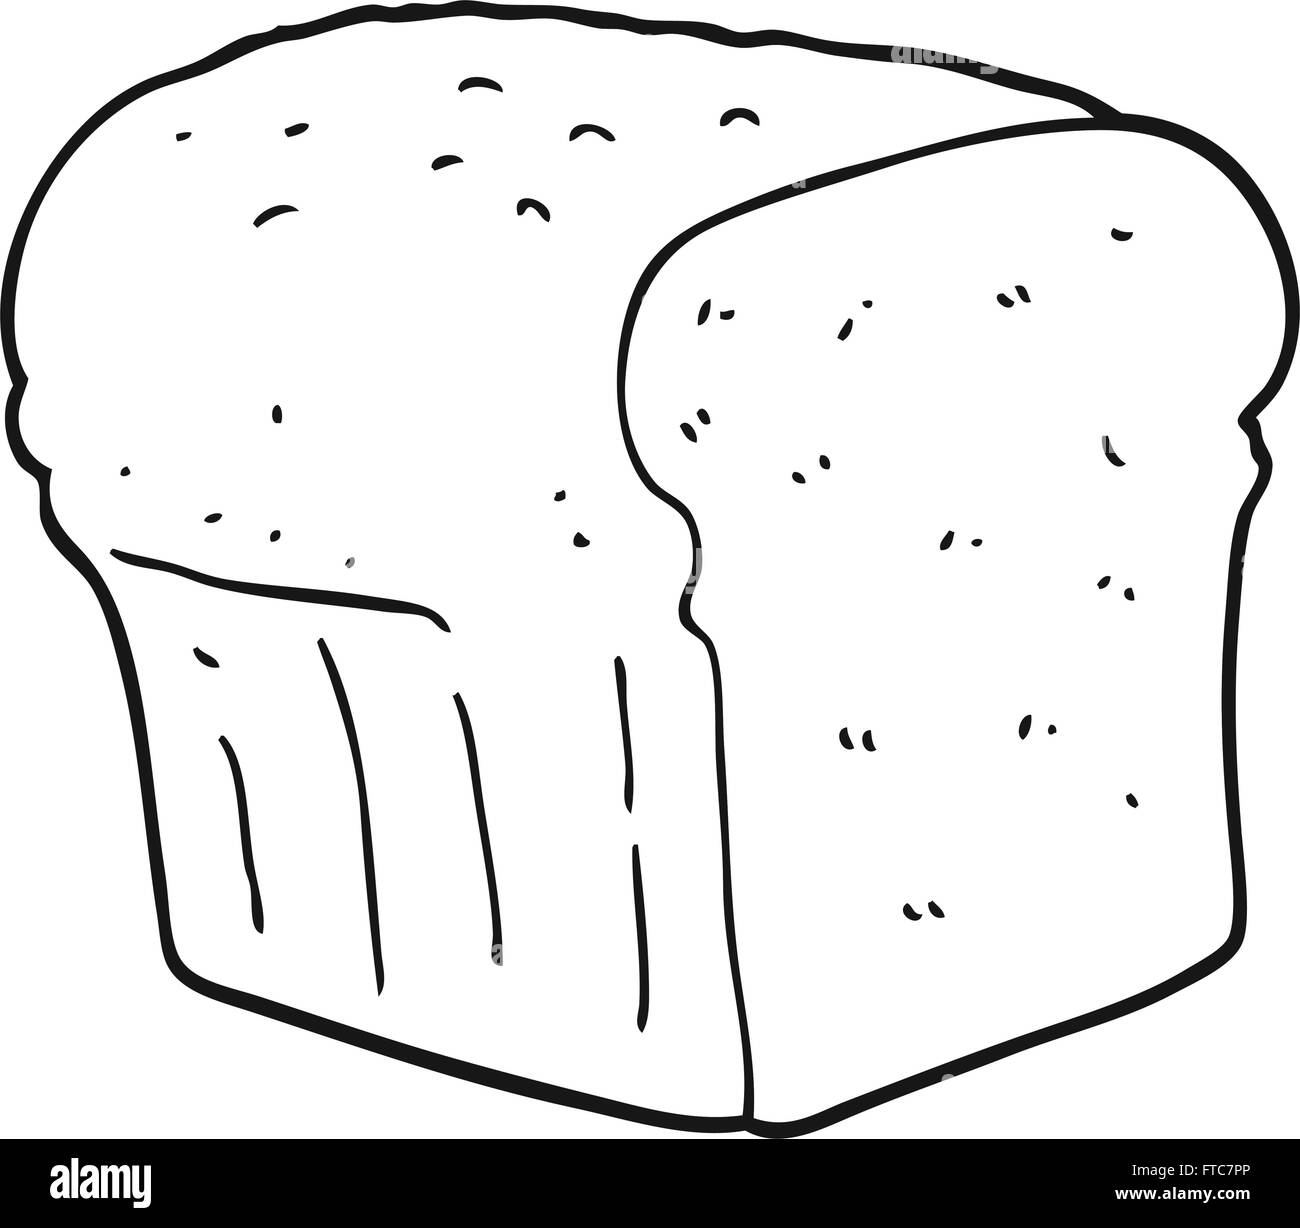 Loaf Clipart Black And White Freehand Drawn Black And White Cartoon Bread Stock Vector